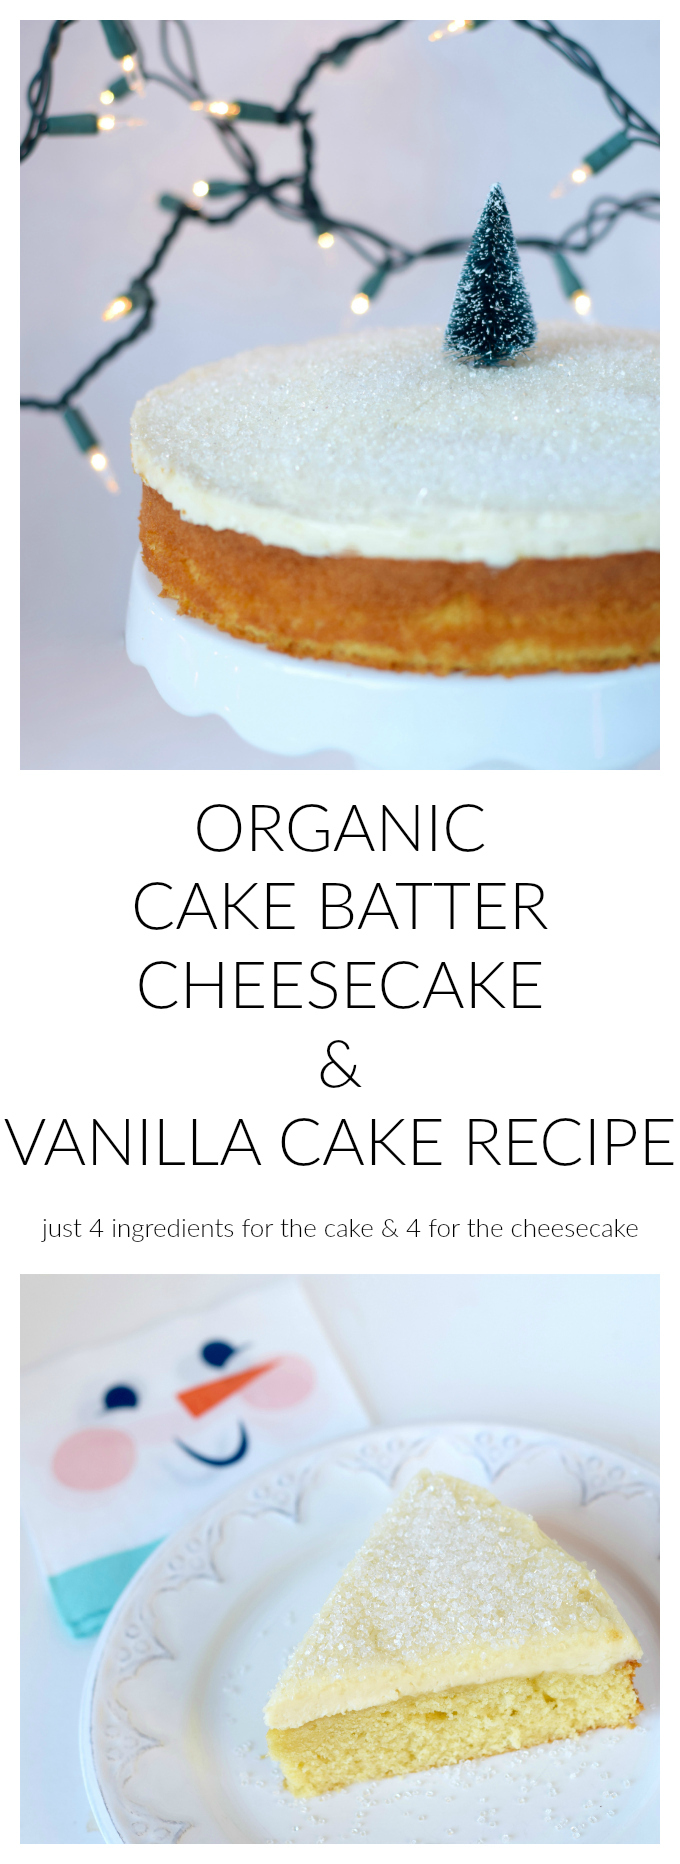 Cake Batter Cheesecake Recipe